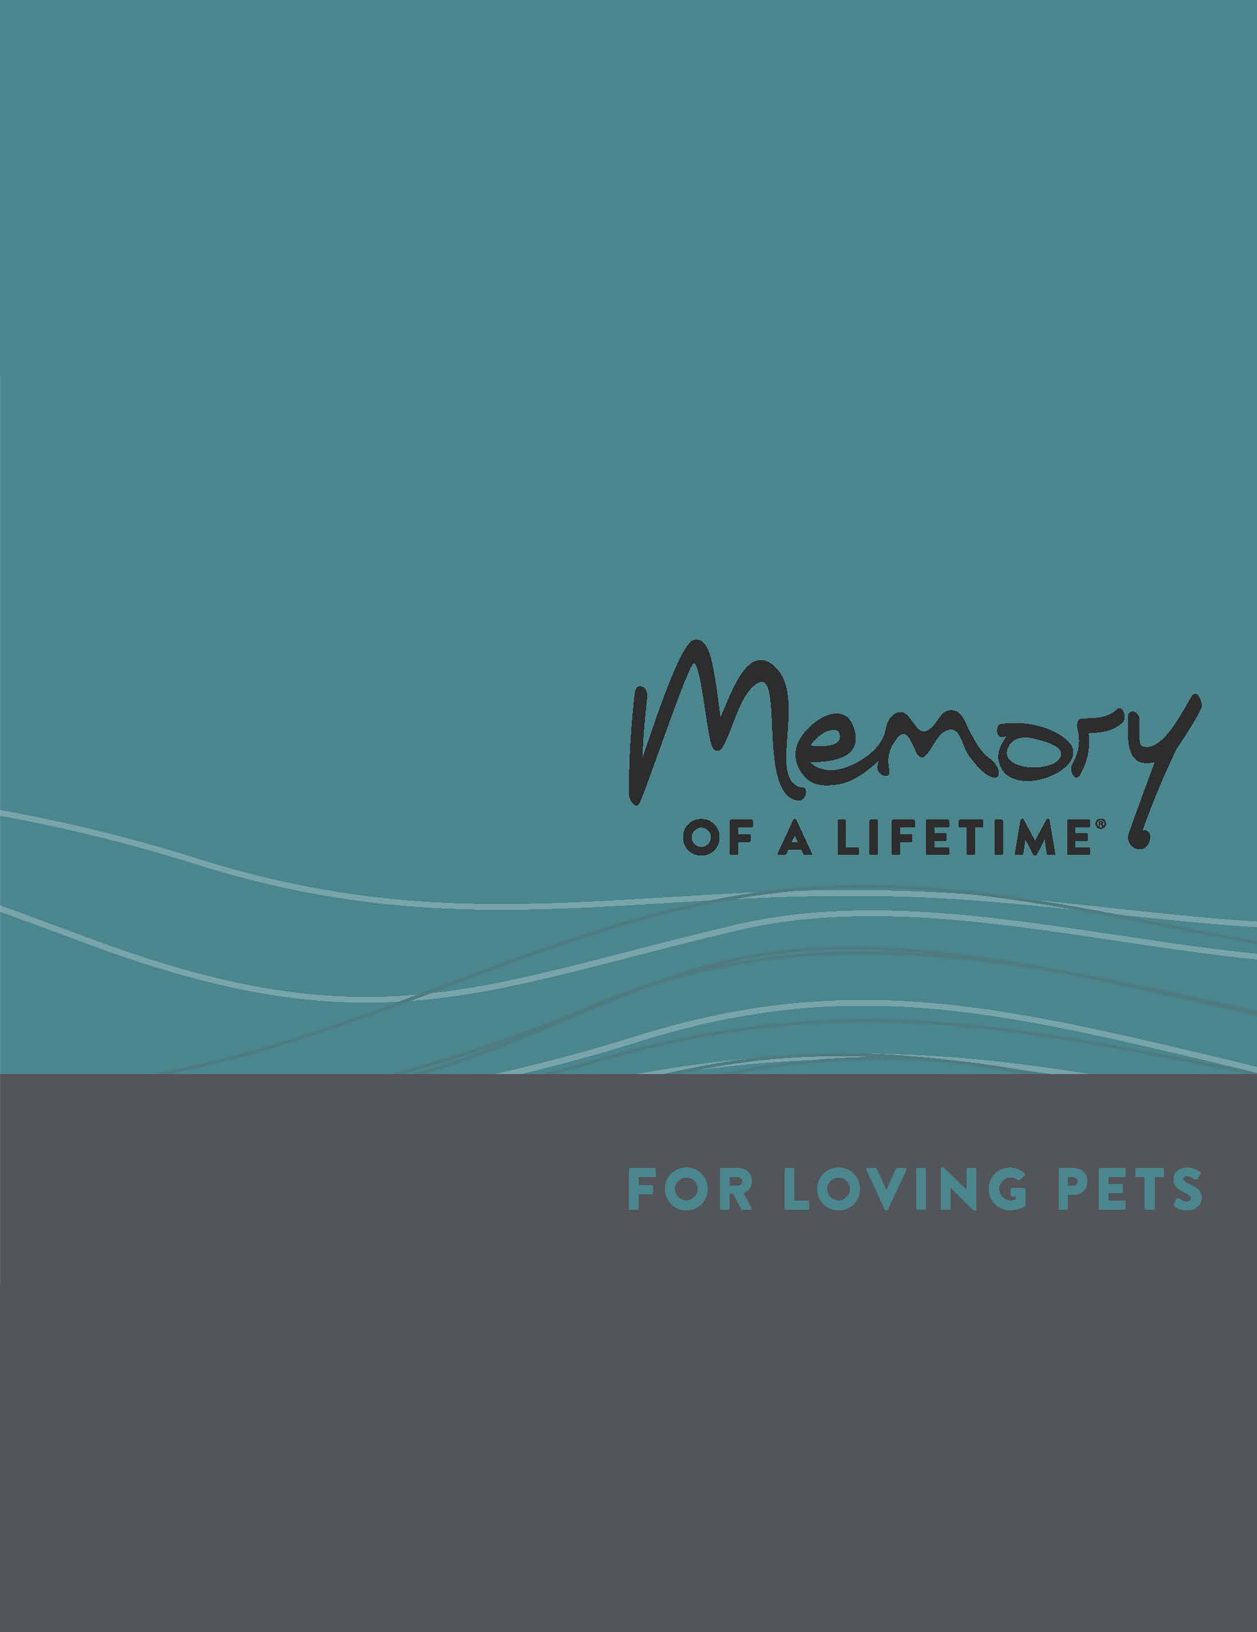 2020 Memory of a Lifetime Pets thumbnail